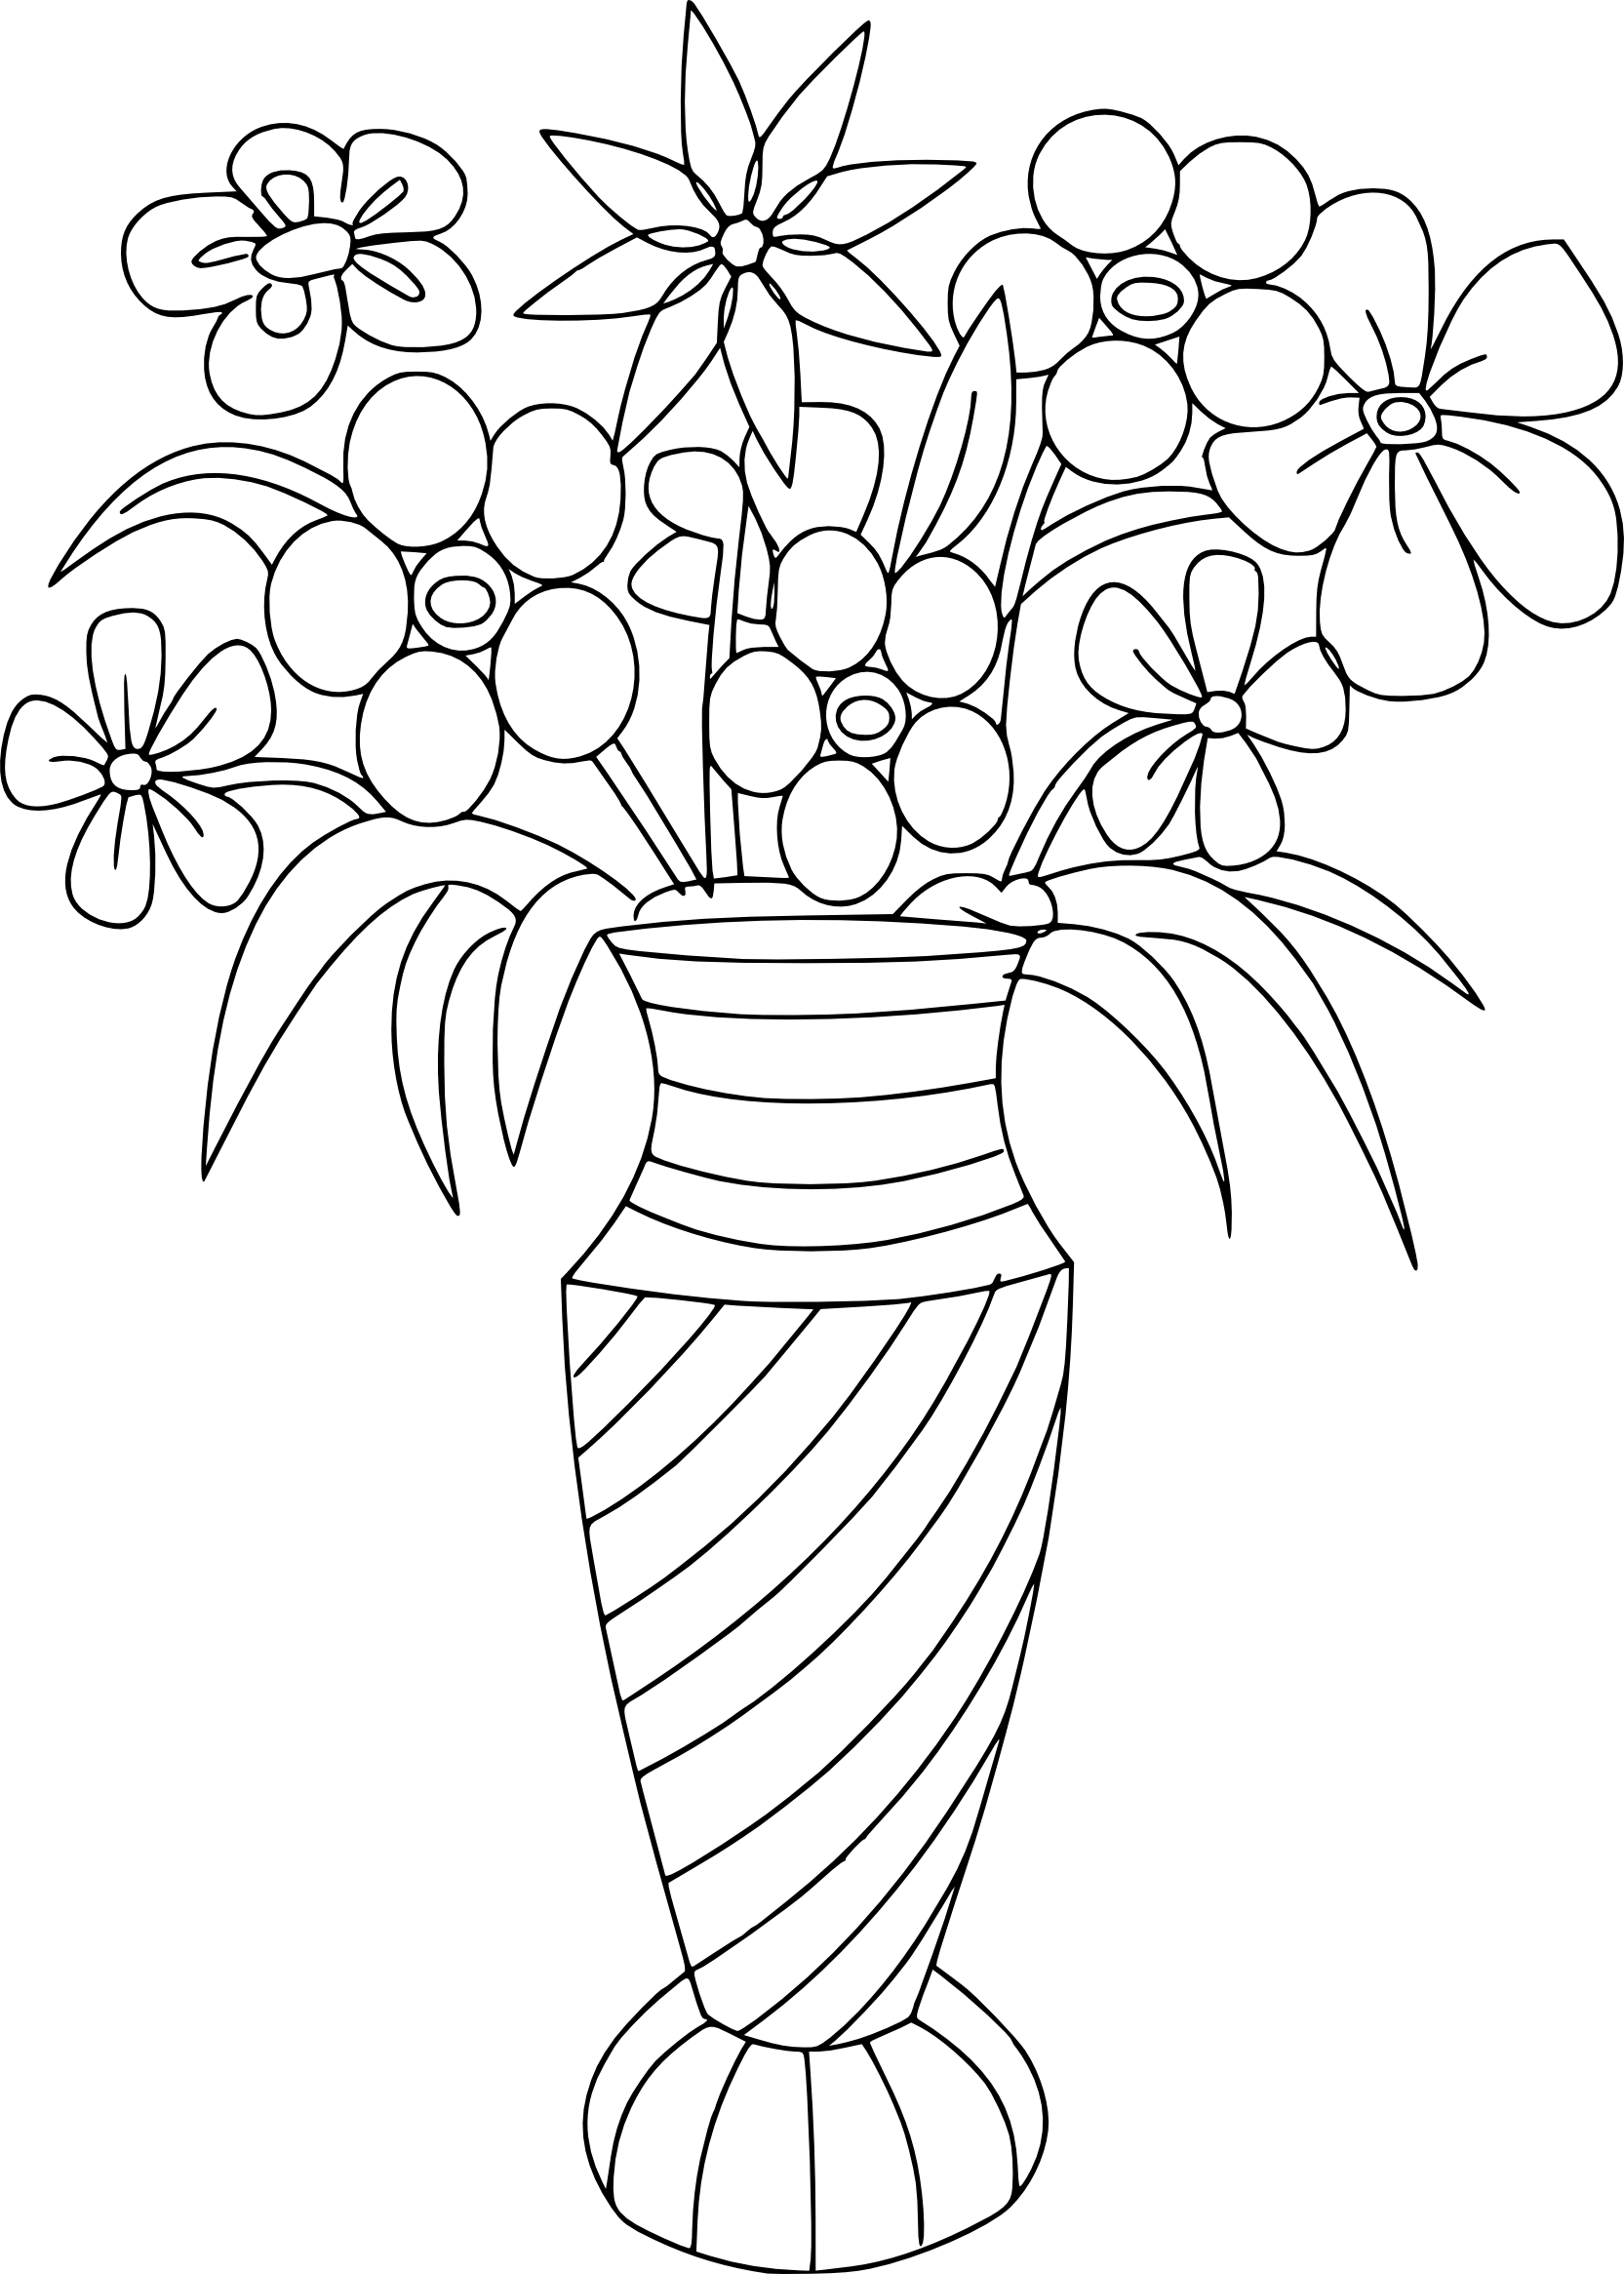 coloriage bouquet de fleurs imprimer. Black Bedroom Furniture Sets. Home Design Ideas